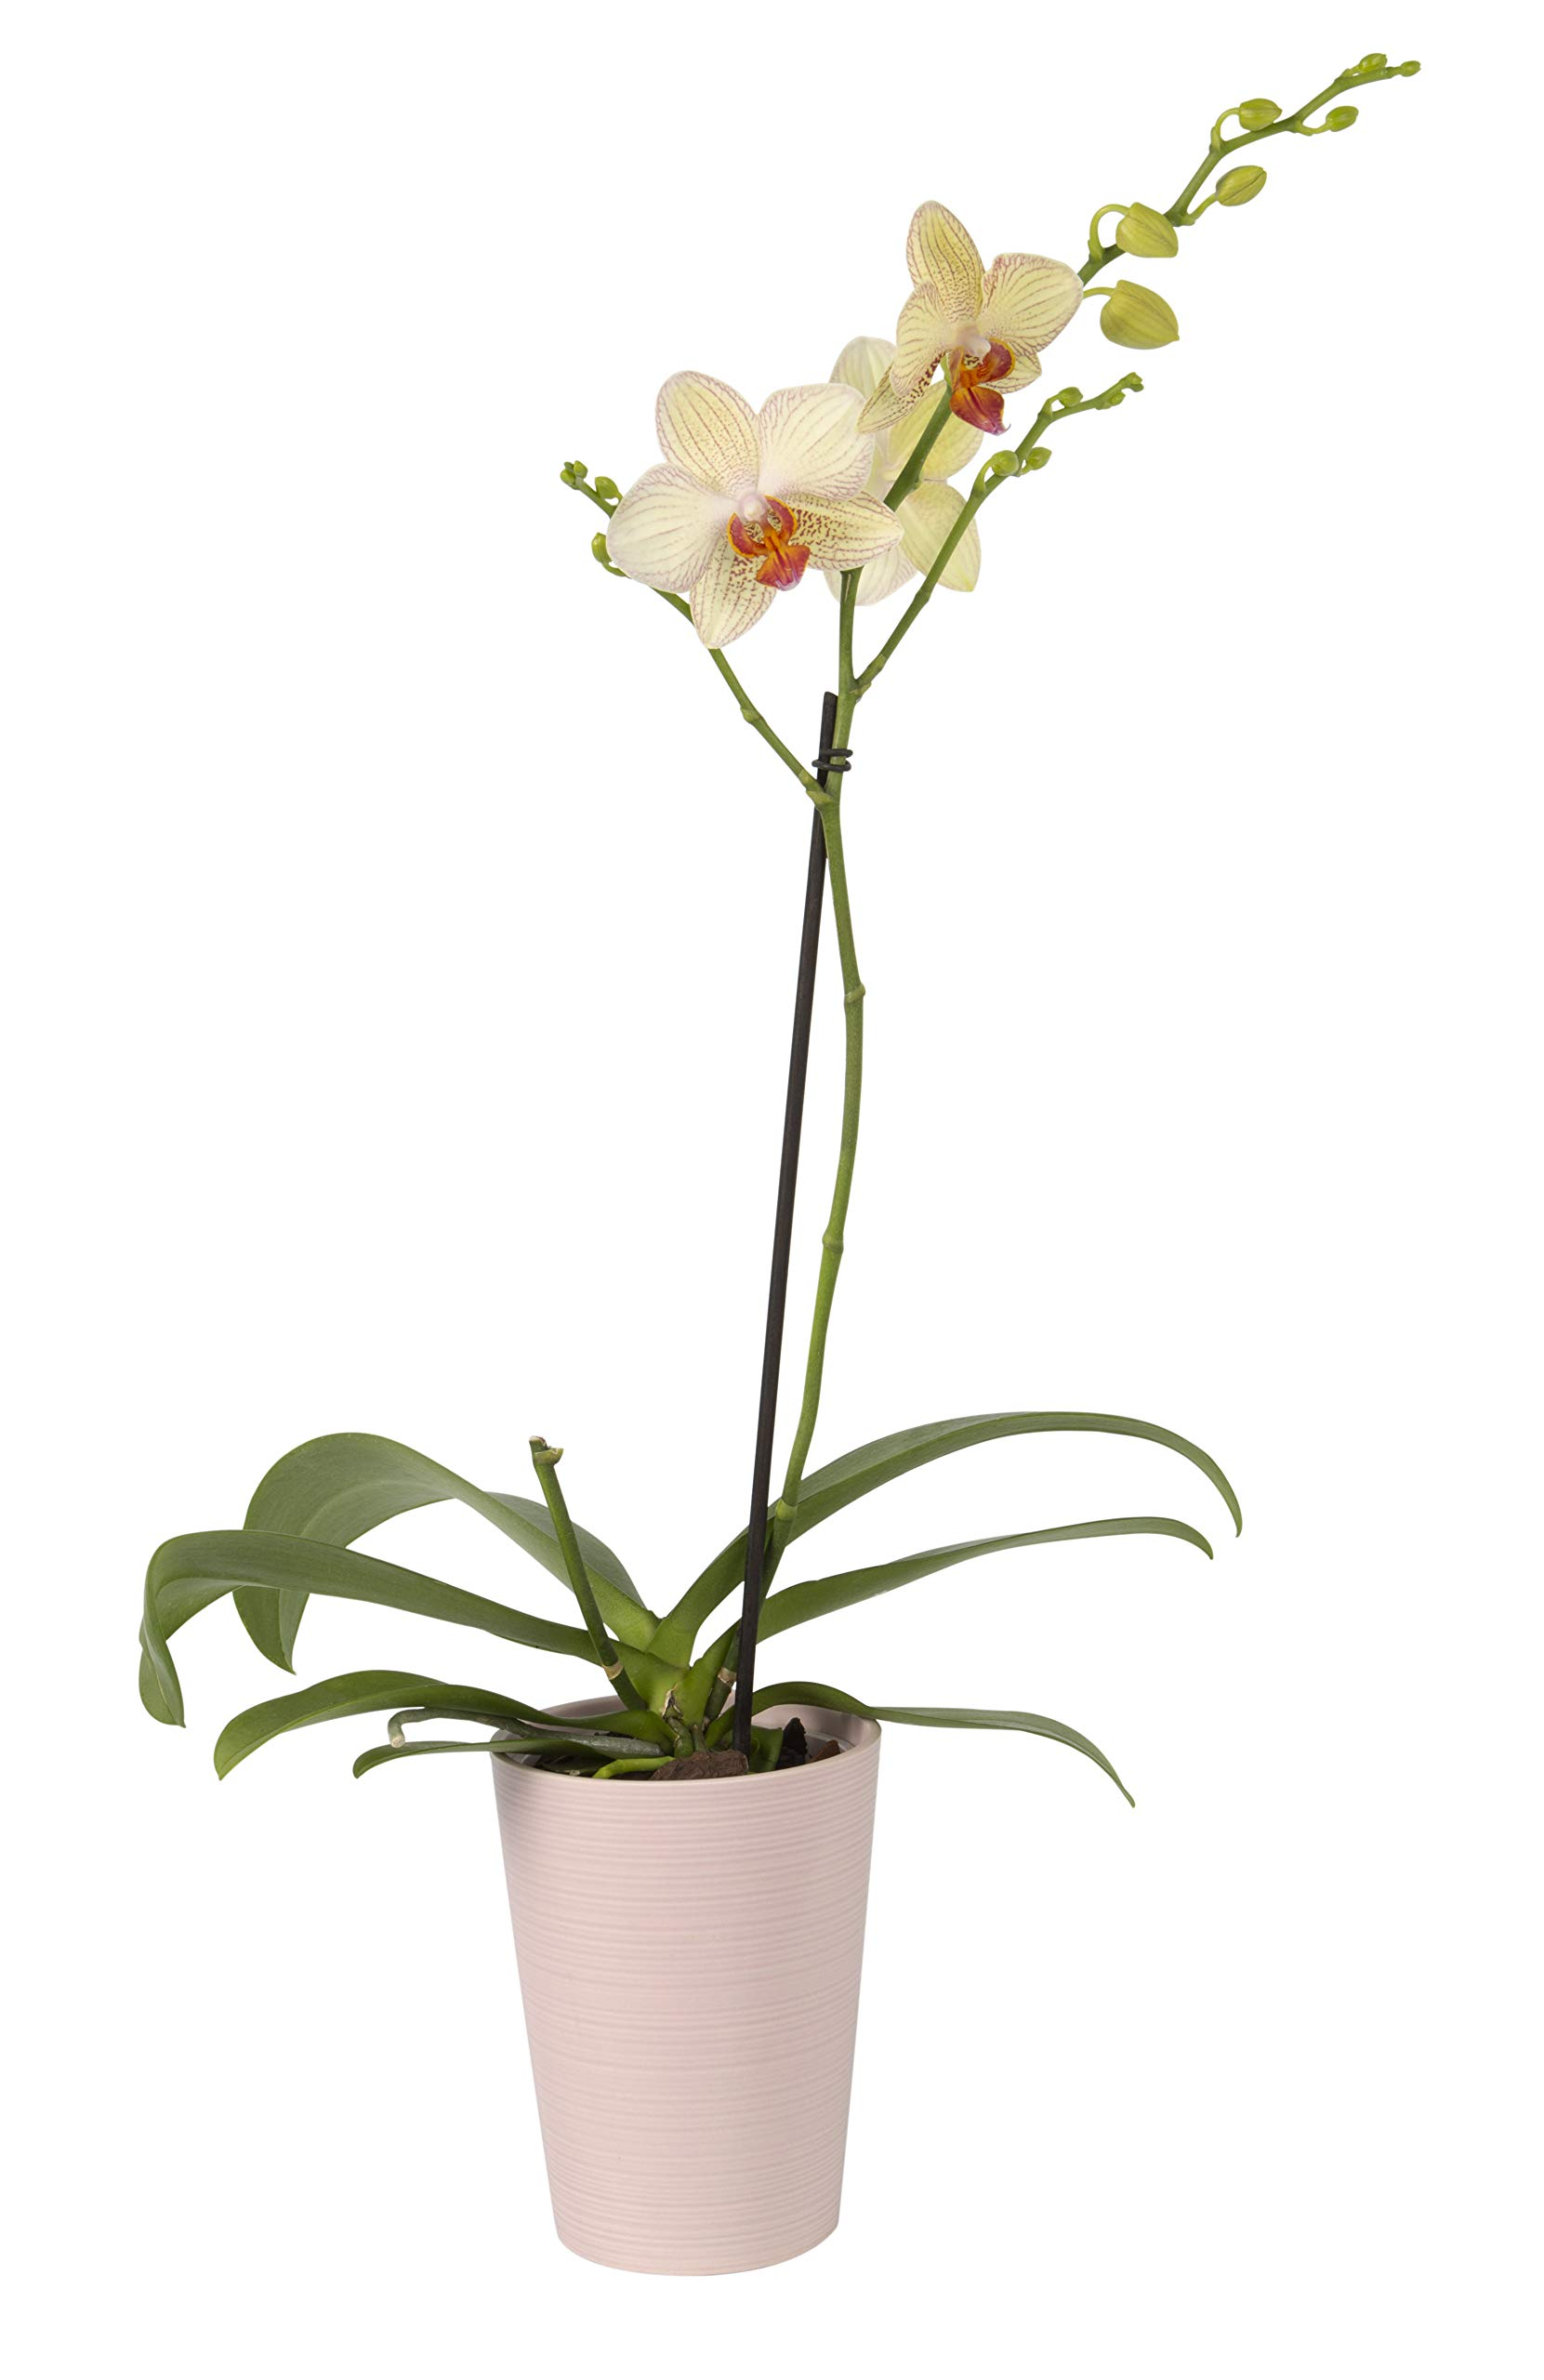 Color Orchids Live Blooming Single Stem Phalaenopsis Orchid Plant in Ceramic Pot, 20''-24'' Tall, Yellow Blooms